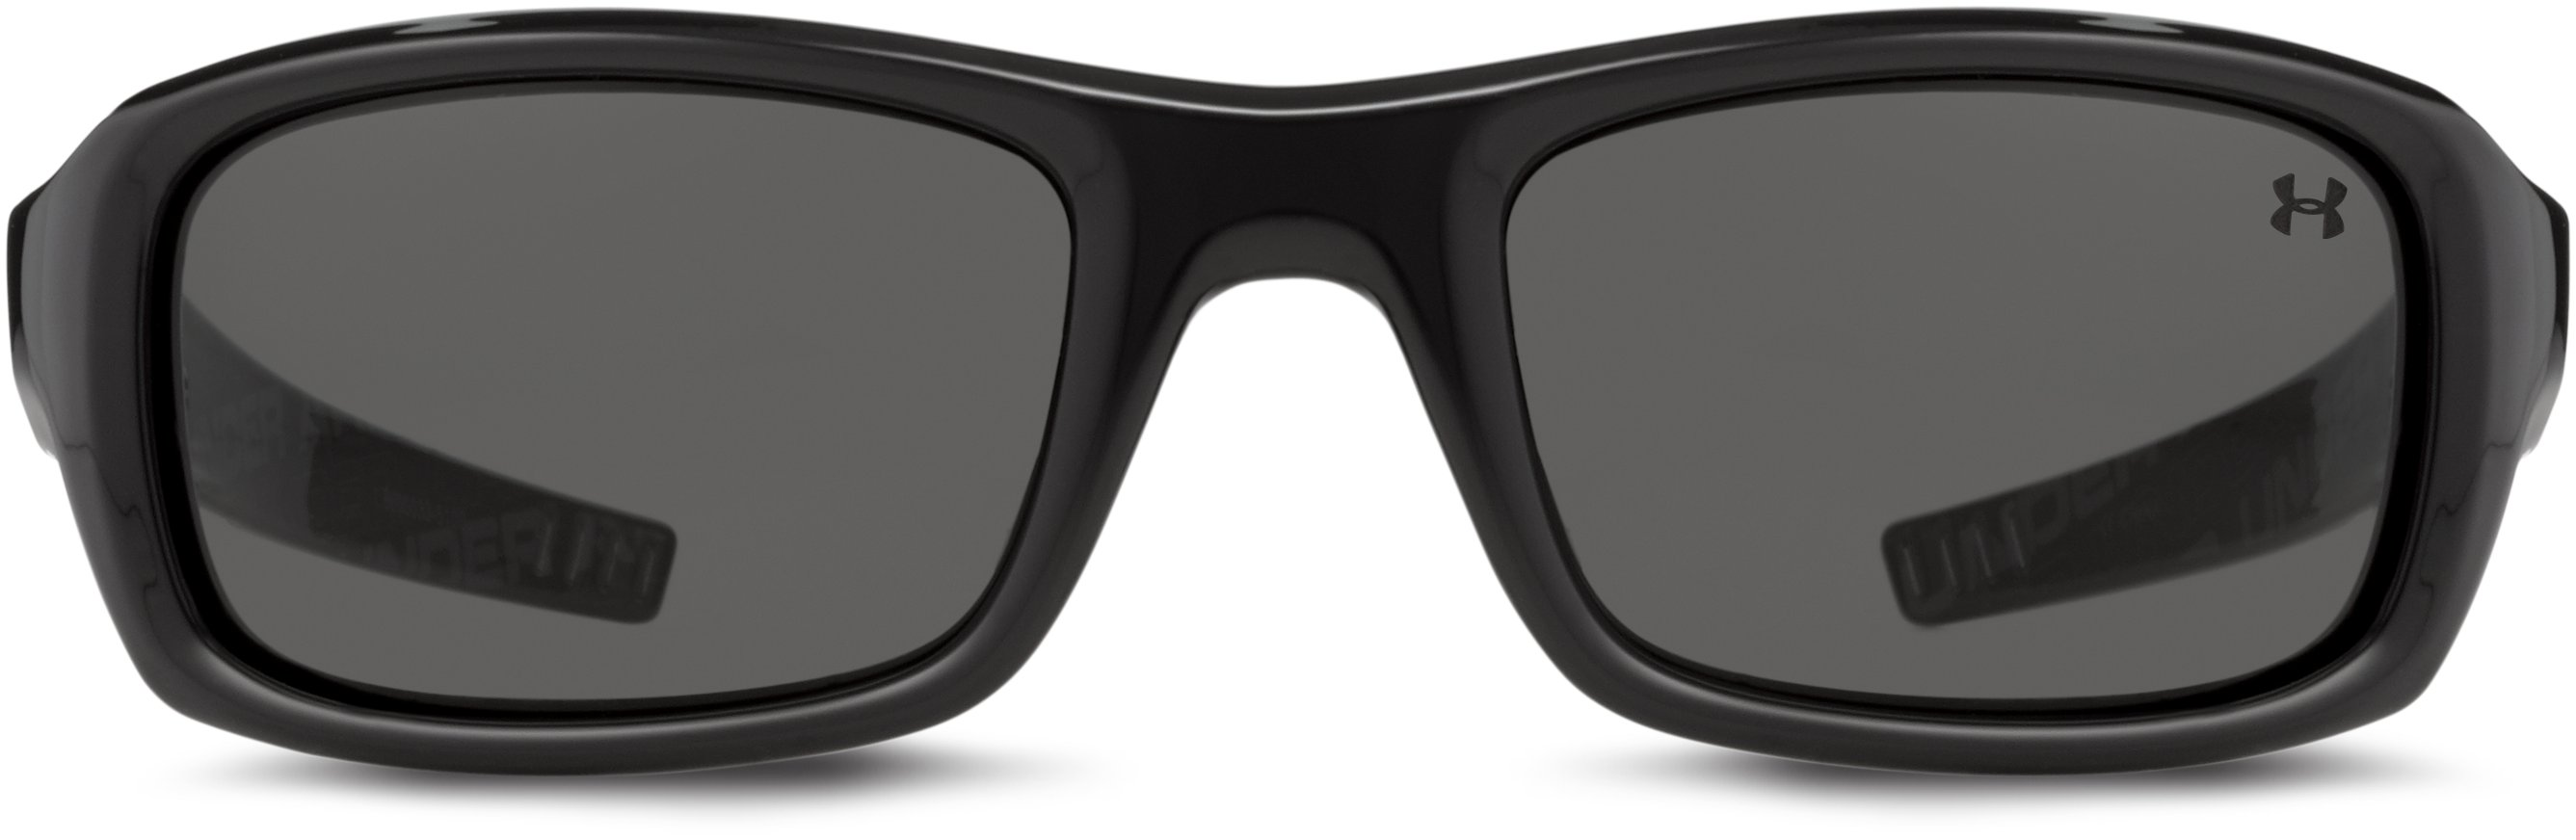 UA Surge Sunglasses, Shiny Black With Print